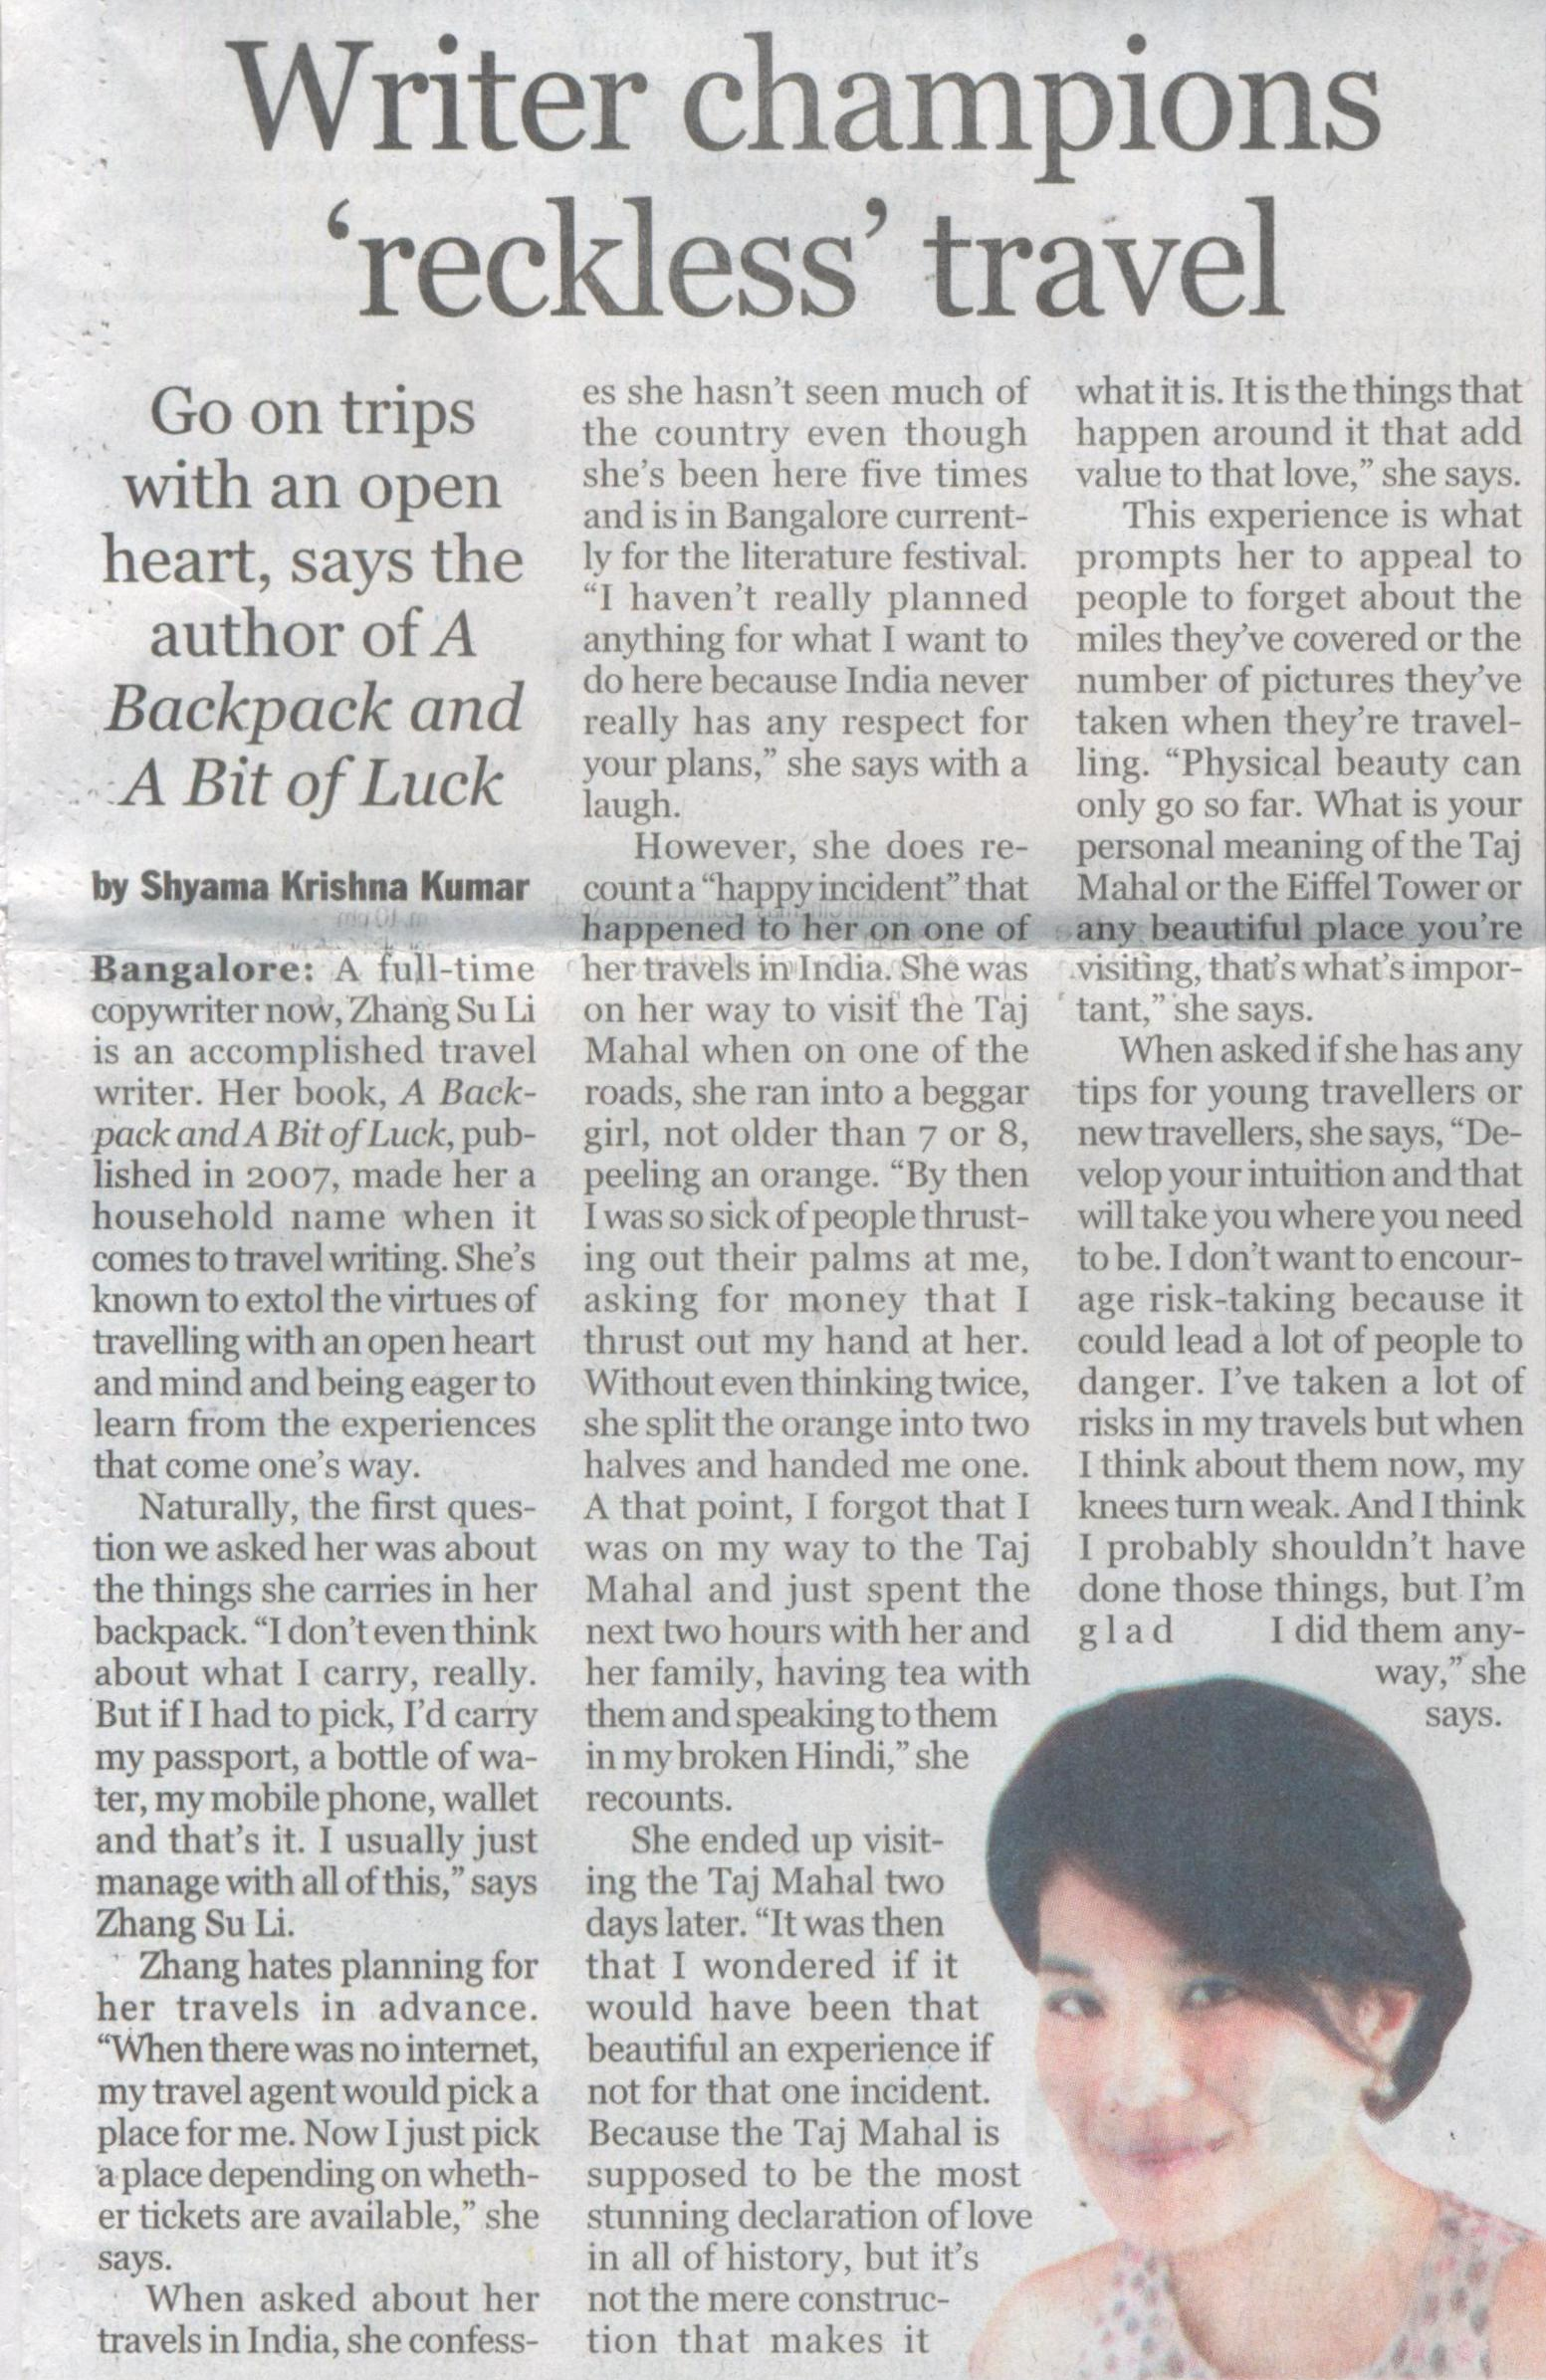 The New Indian Express, Page - 03(City Express), Date - 29.09.2014